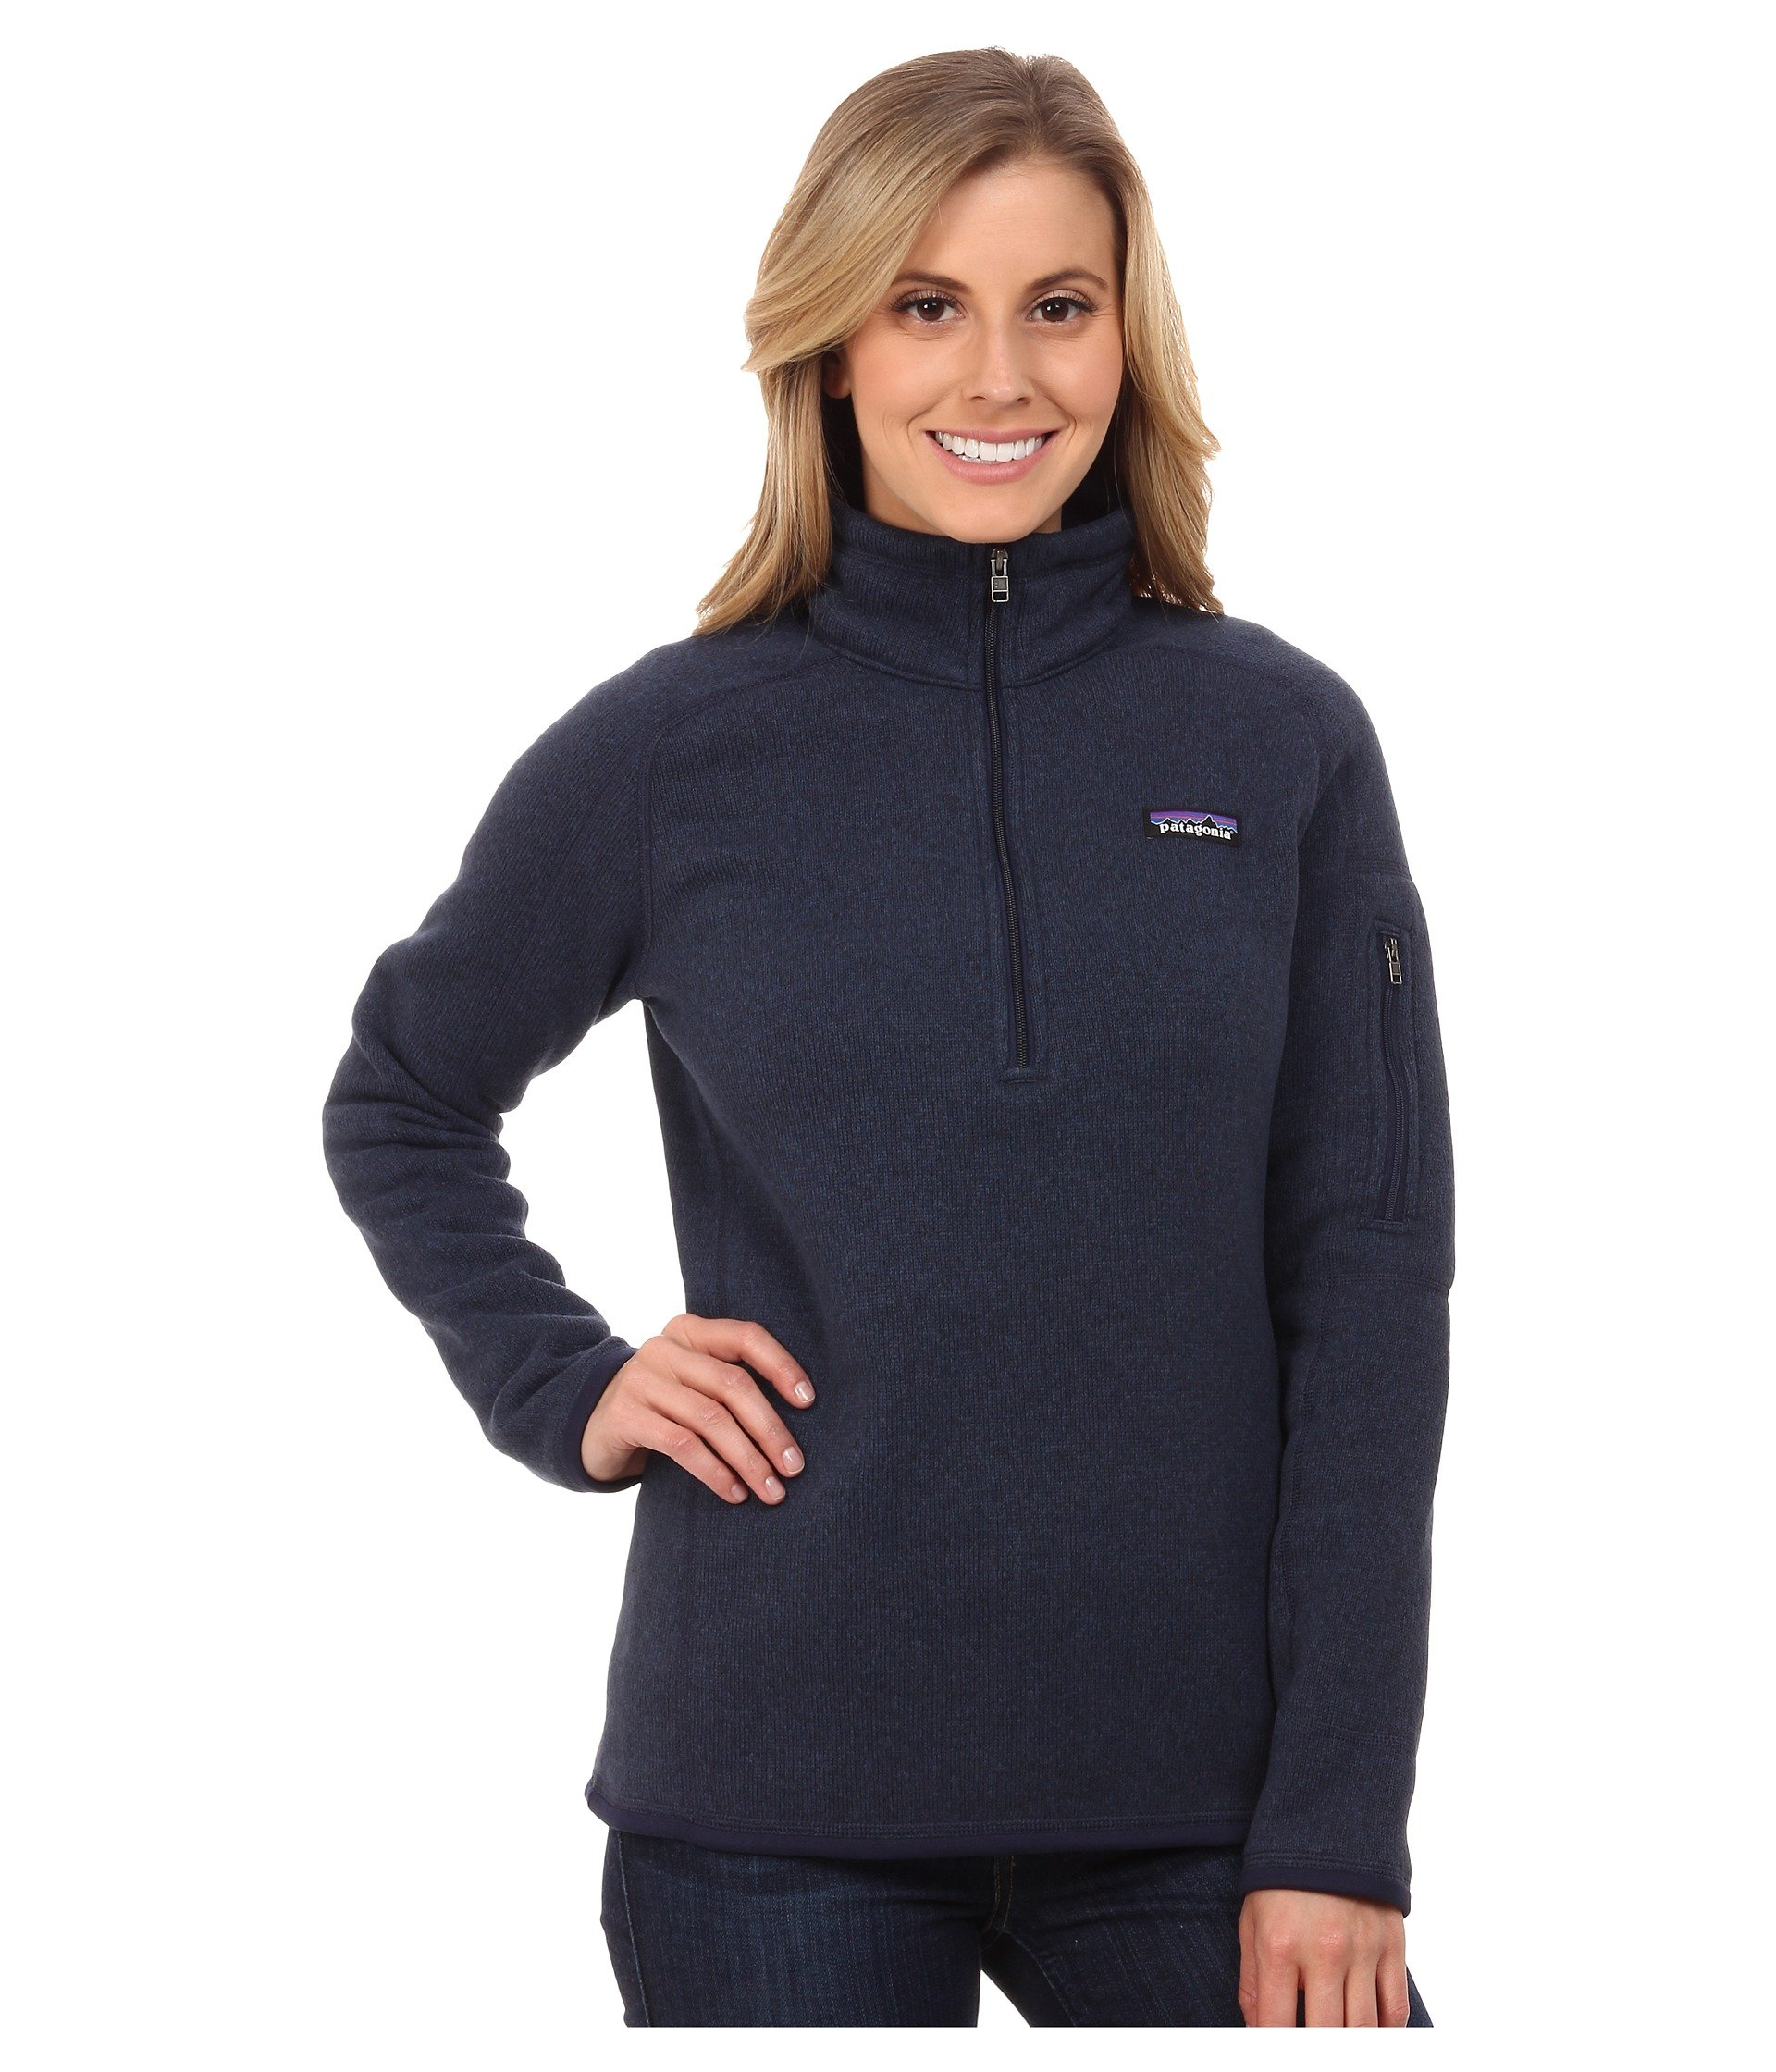 Patagonia  Women's  Sweater with 1/4 Zip Fleece - Large - Classic Navy by Patagonia